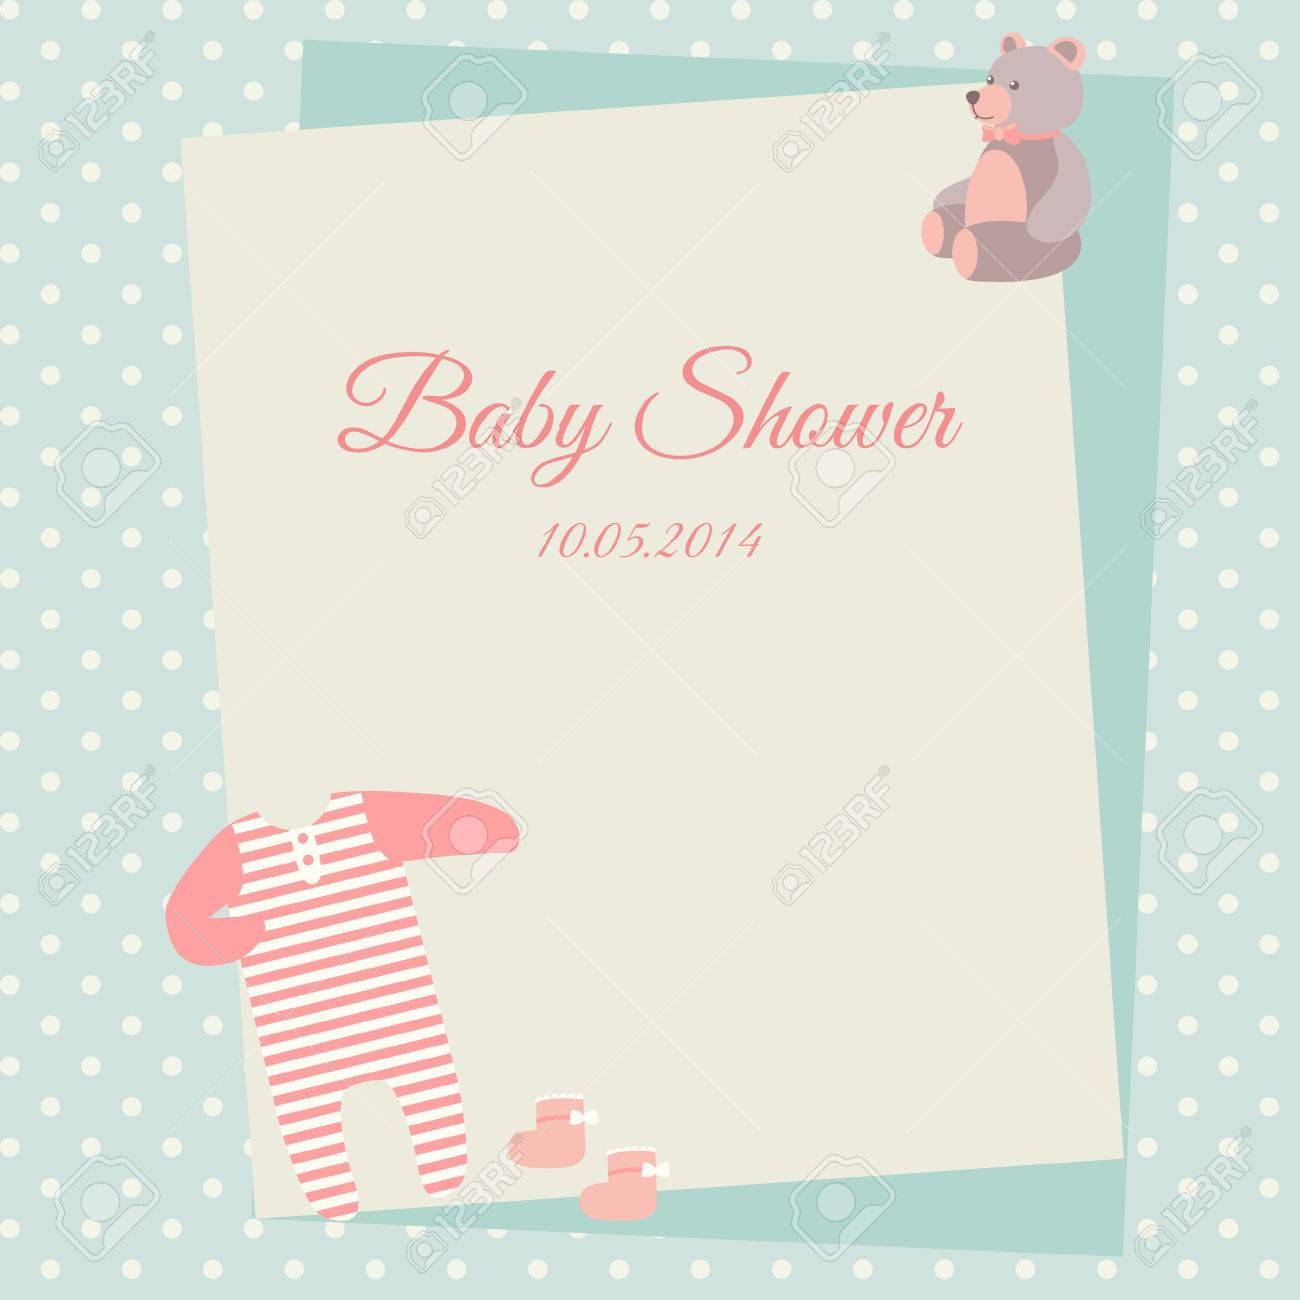 Baby Shower Invitation Card Template With Bodysuit And Teddy